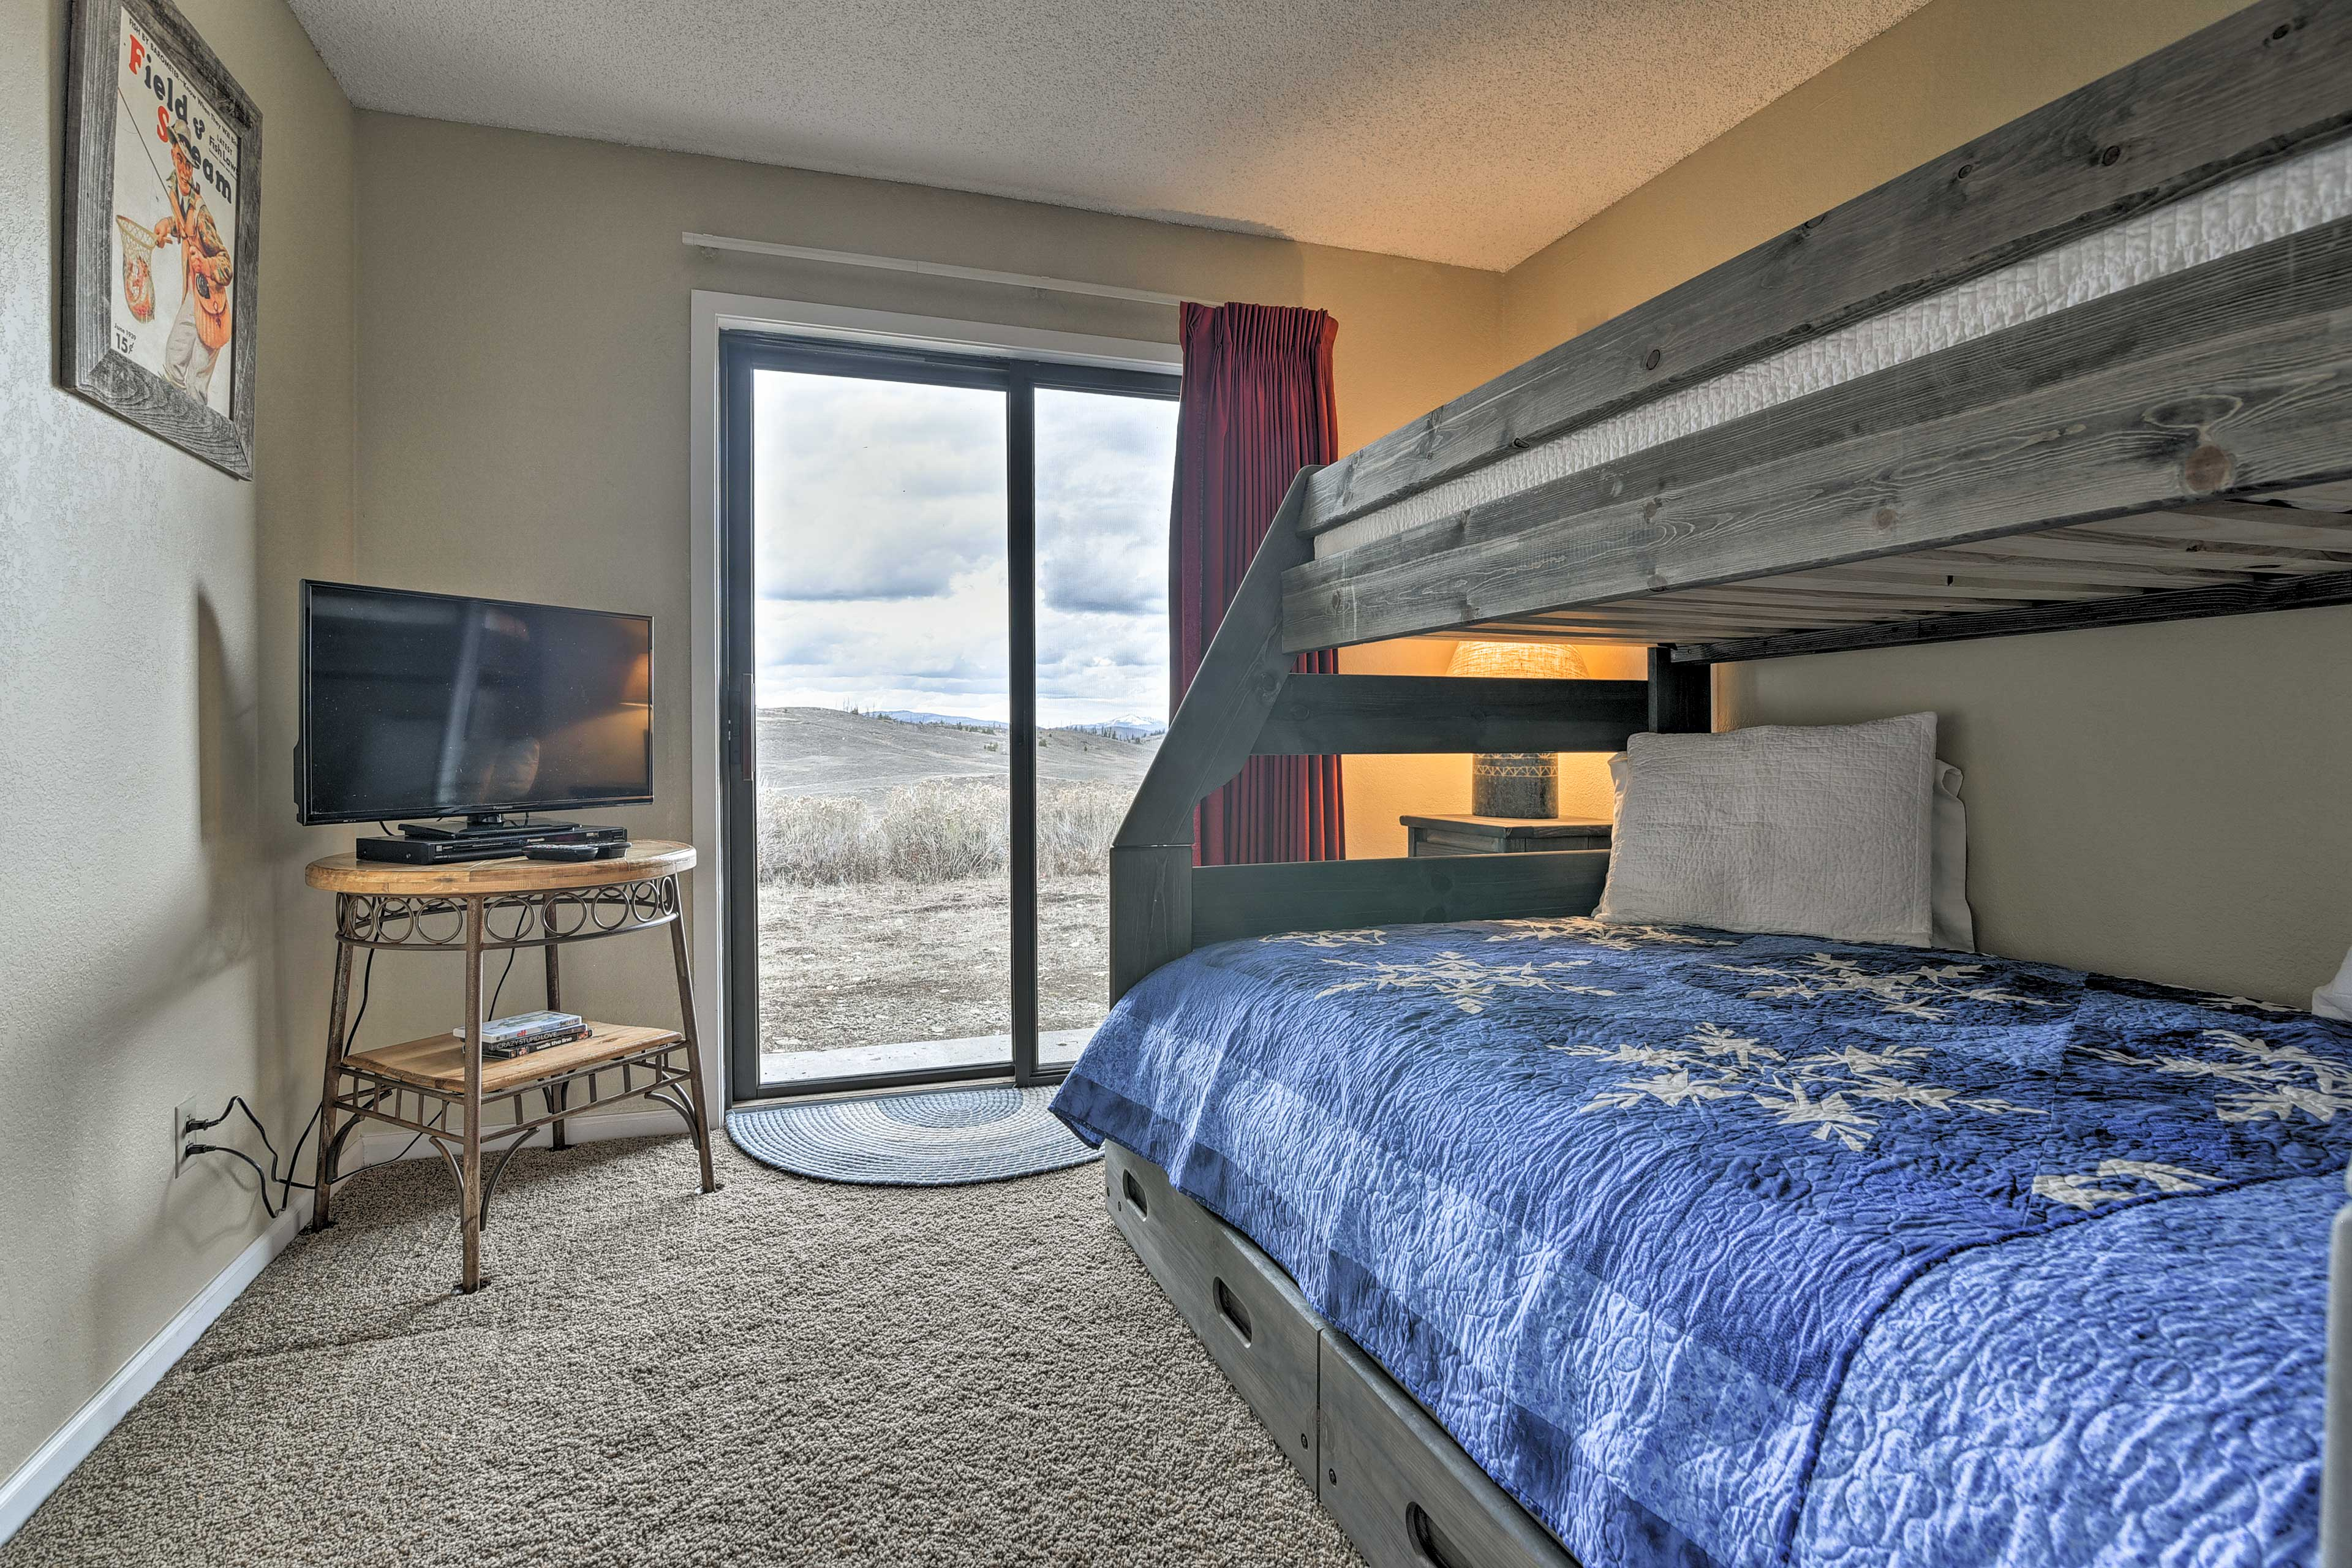 The condo offers 2 bedrooms for guests to sleep in.